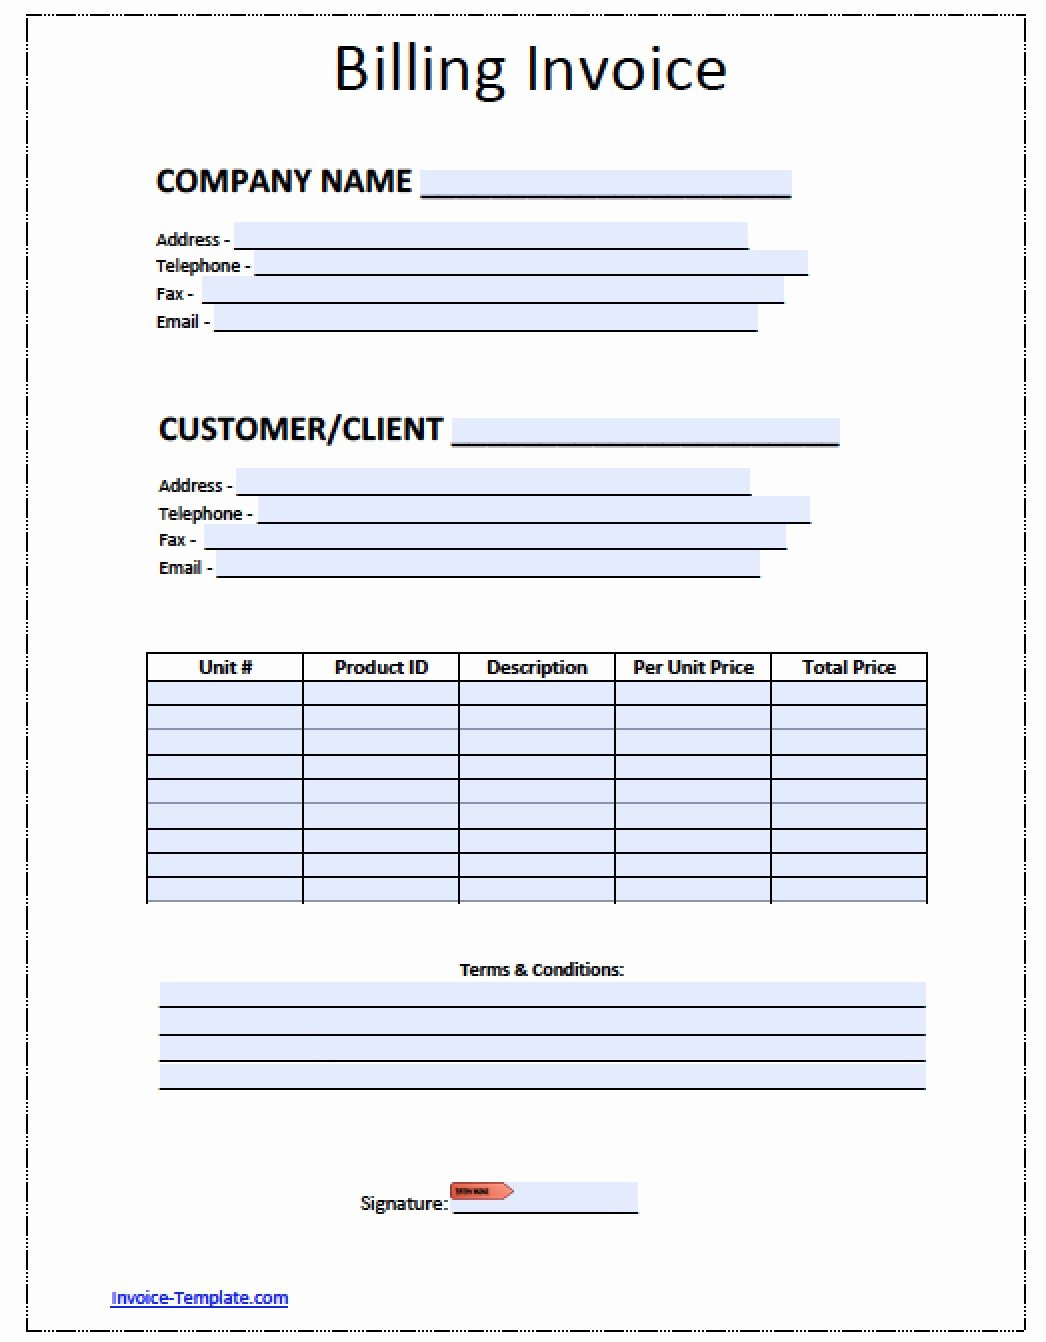 Child Care Invoice Template Unique Child Care Invoice Template Eliolera – Templatesinvoice